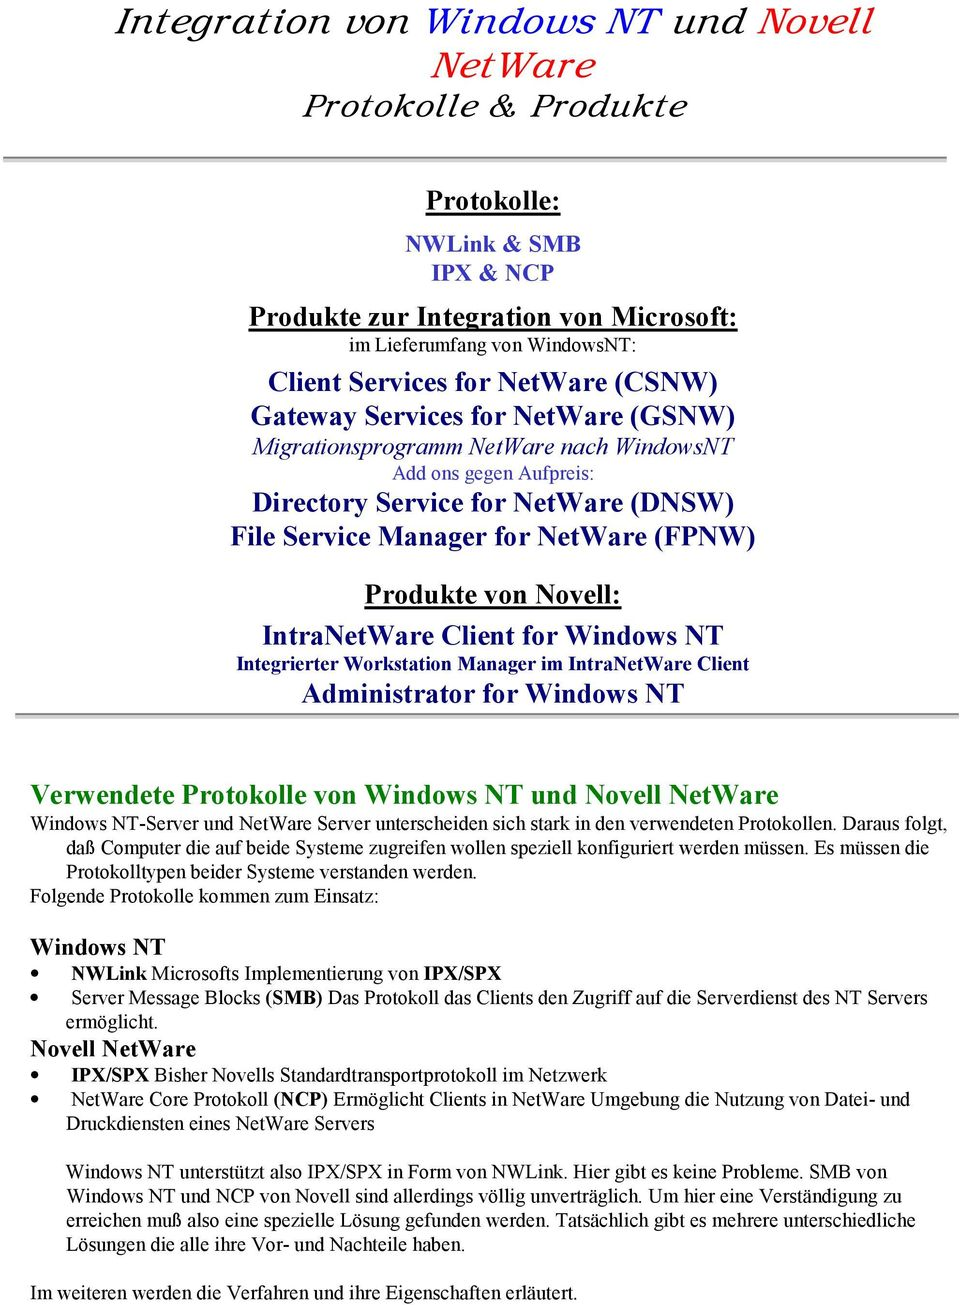 Produkte von Novell: IntraNetWare Client for Windows NT Integrierter Workstation Manager im IntraNetWare Client Administrator for Windows NT Verwendete Protokolle von Windows NT und Novell NetWare